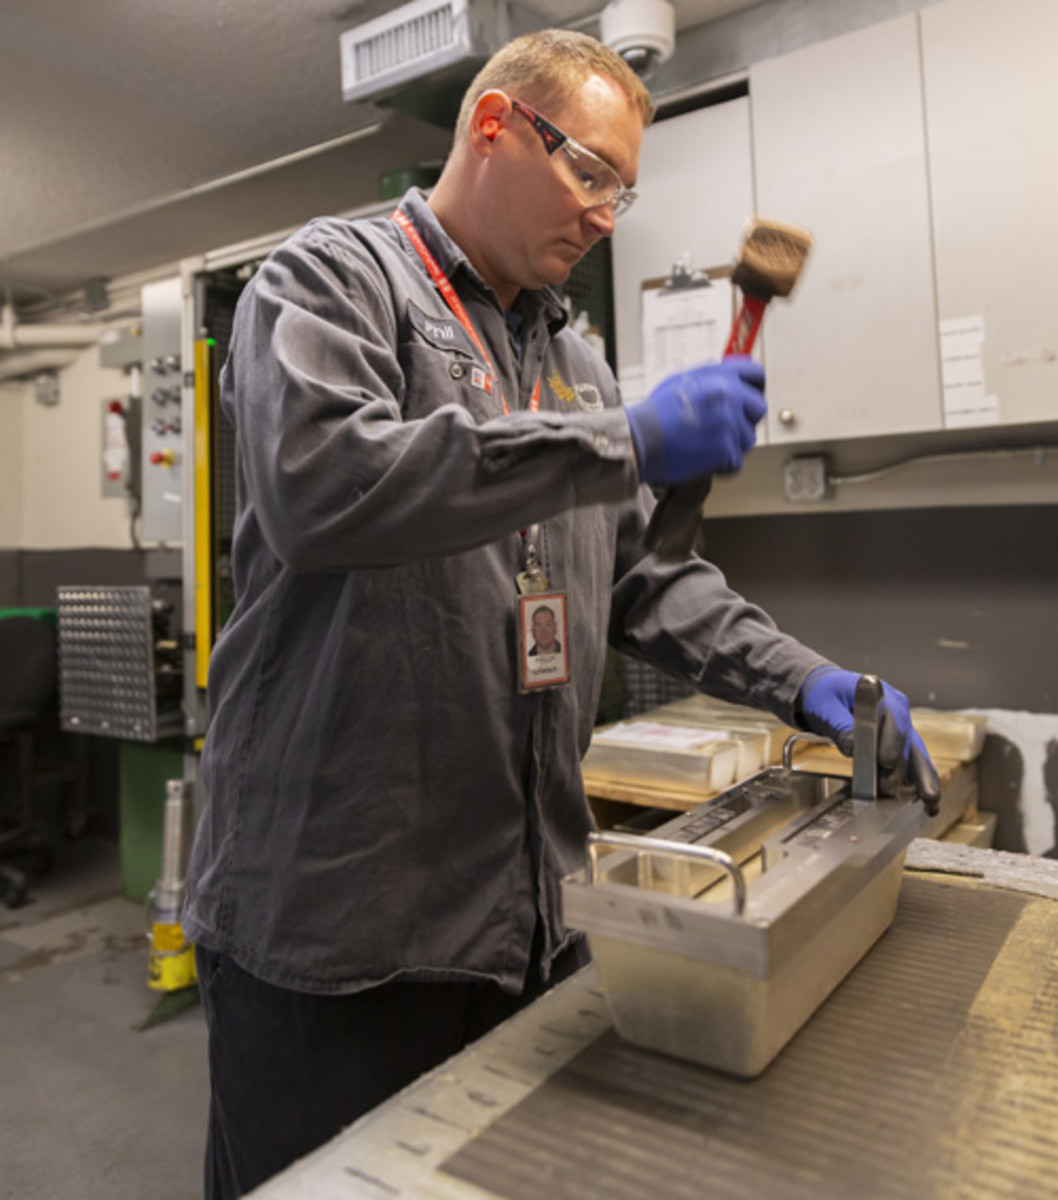 Refinery employee Phillip Downer stamps a 1,000-ounce silver bar at the Royal Canadian Mint in Ottawa. Downer has worked throughout the pandemic as the RCM re-prioritized operations to focus on bullion in support of the mining industry and financial sector. (Image courtesy Royal Canadian Mint.)